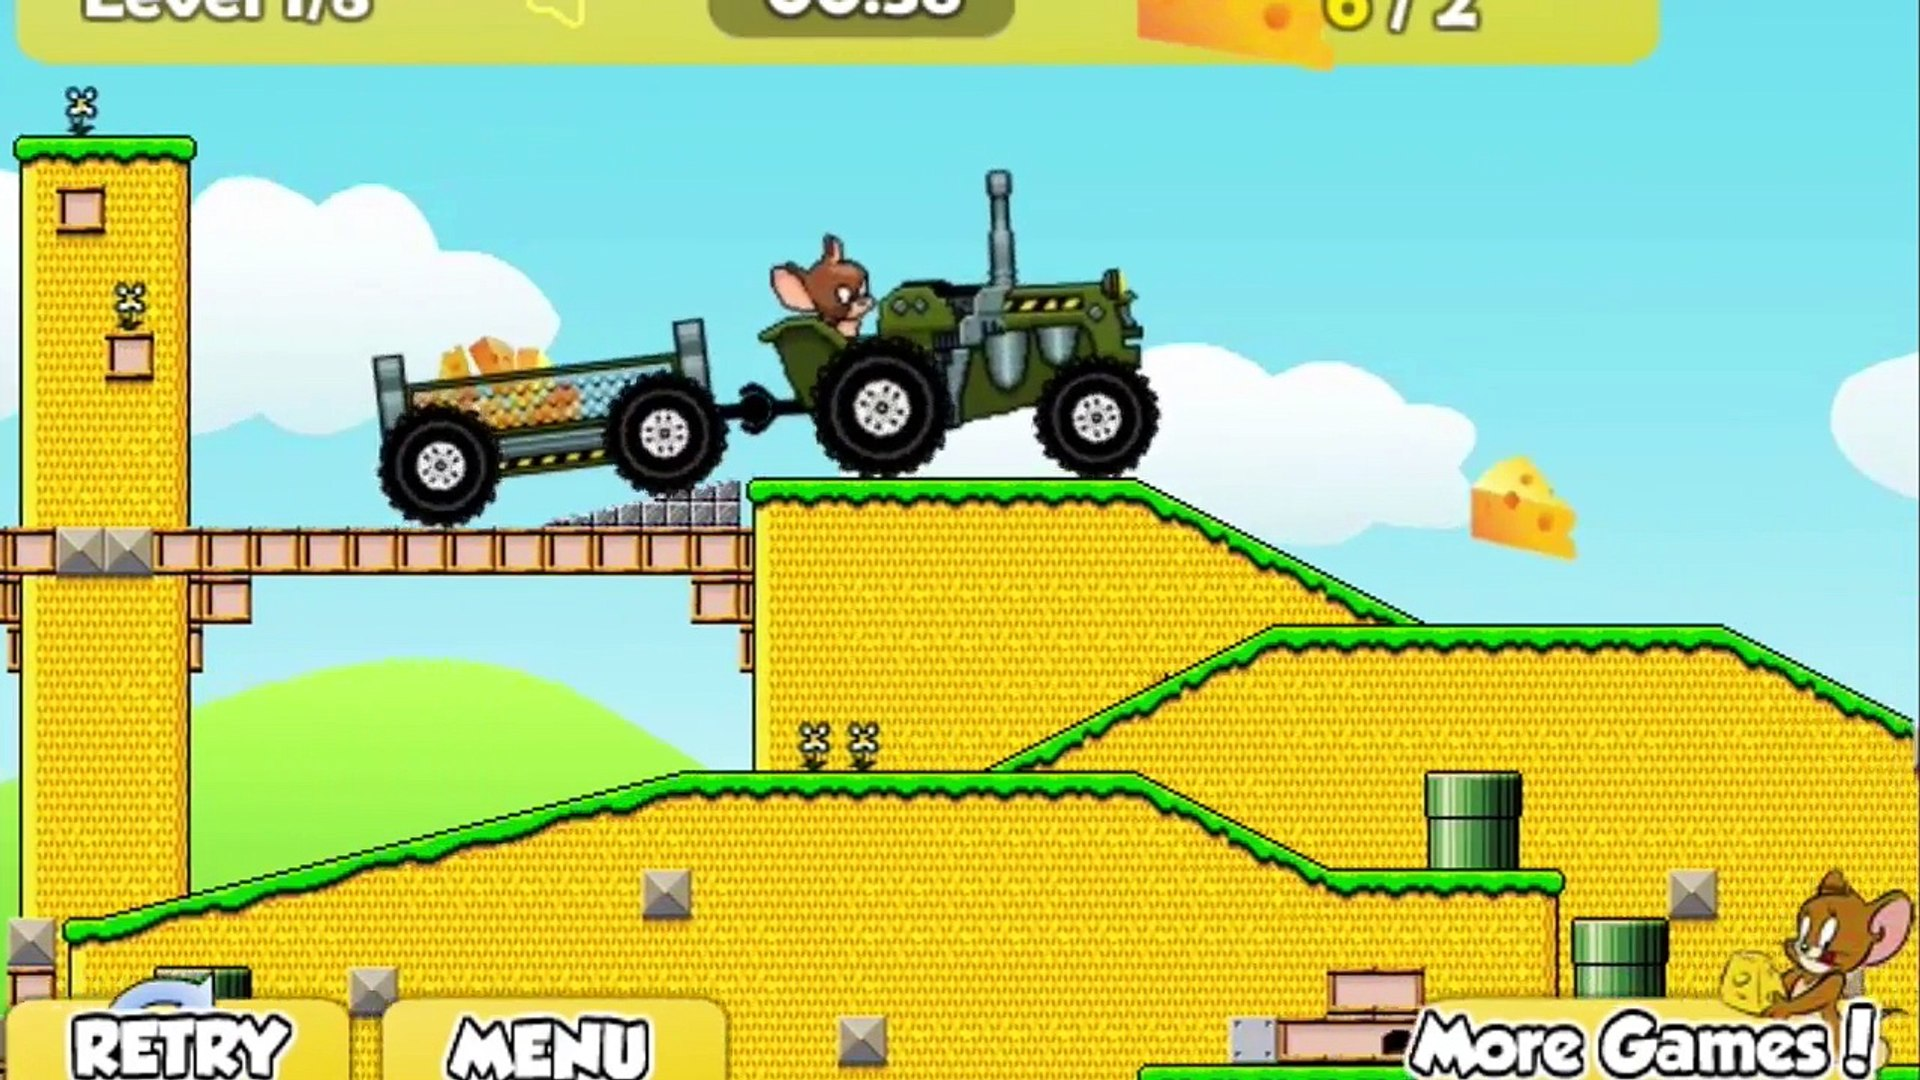 Tom and Jerry Tractor - Cartoon Game for Kids Game | Tom and Jerry | Kids Gaming Shows TV